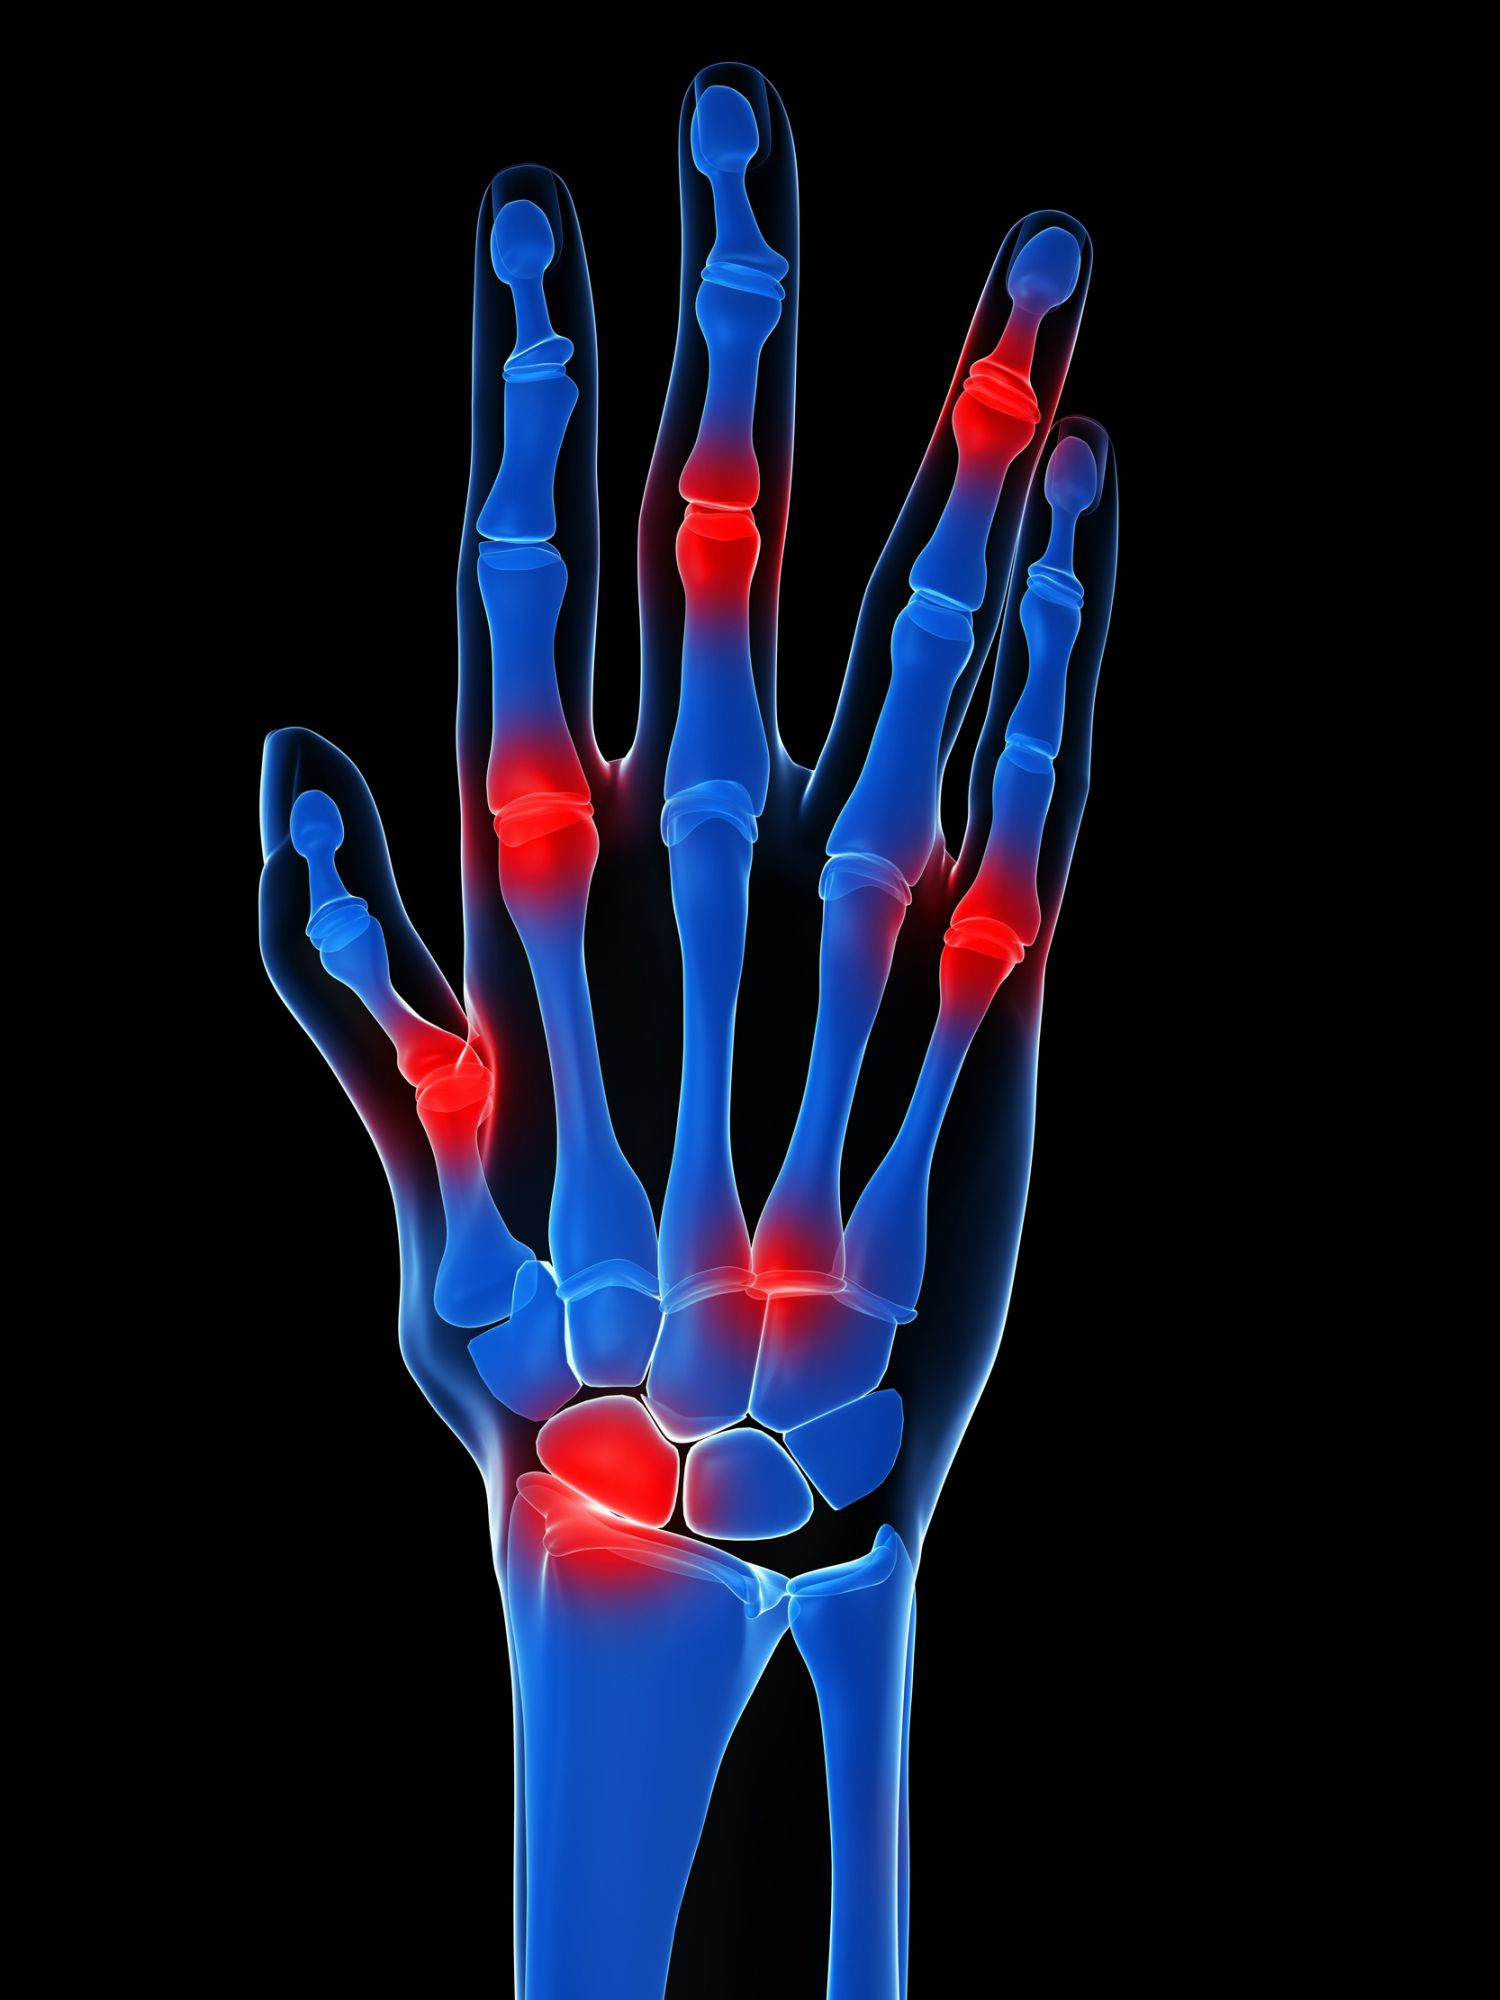 Identifying joint damage. © Sebastian Kaulitzki, Fotolia